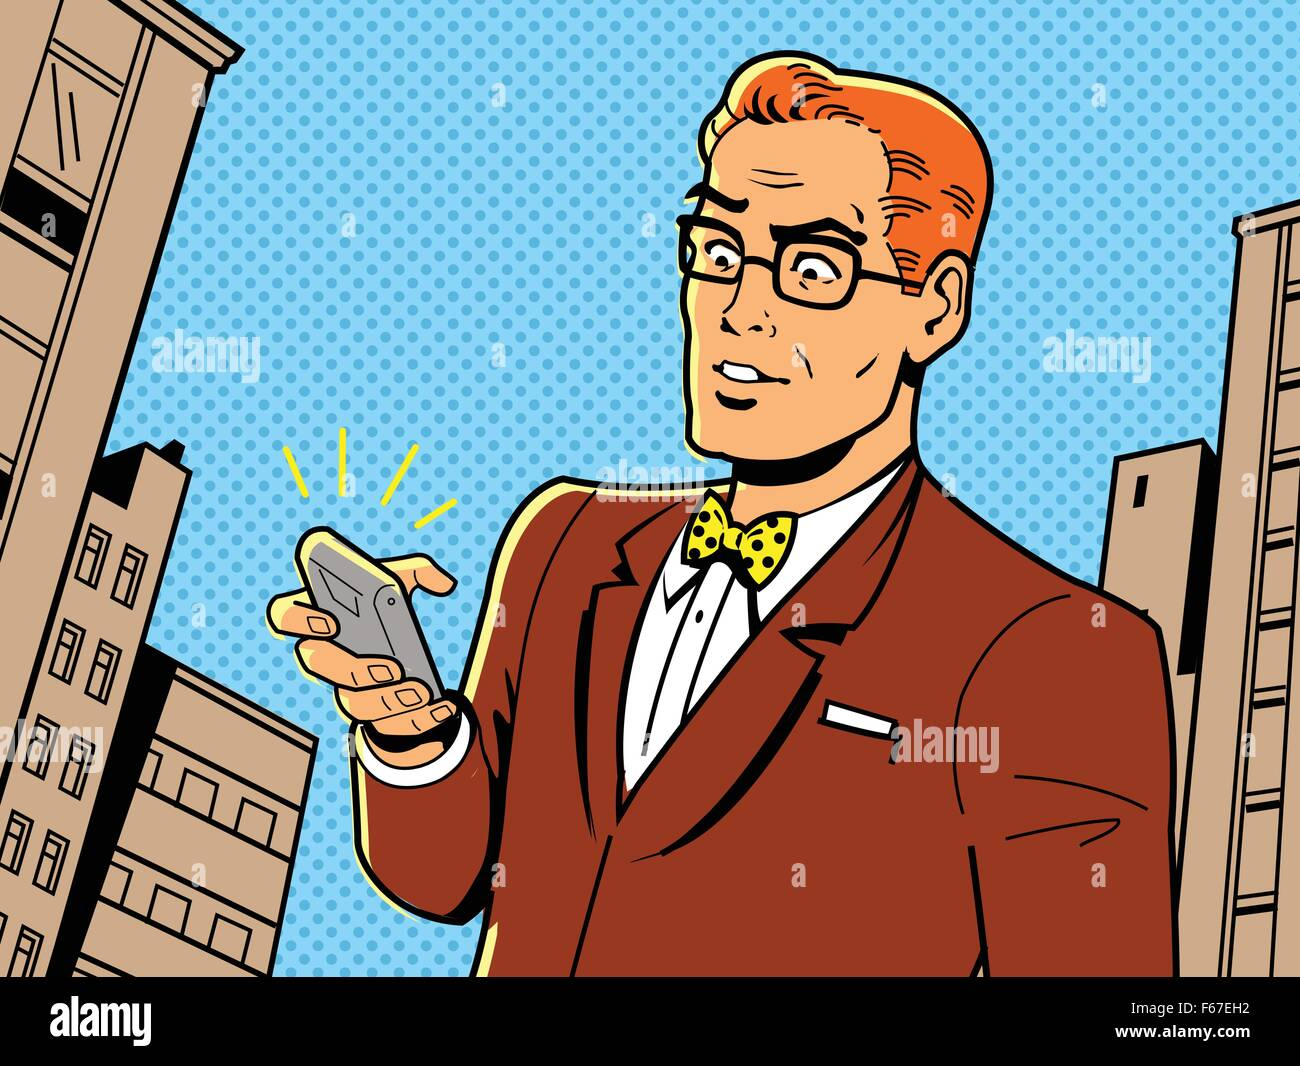 Ironic Illustration of a Retro 1940s or 1950s Man With Glasses, Bow Tie and Modern Smartphone - Stock Image